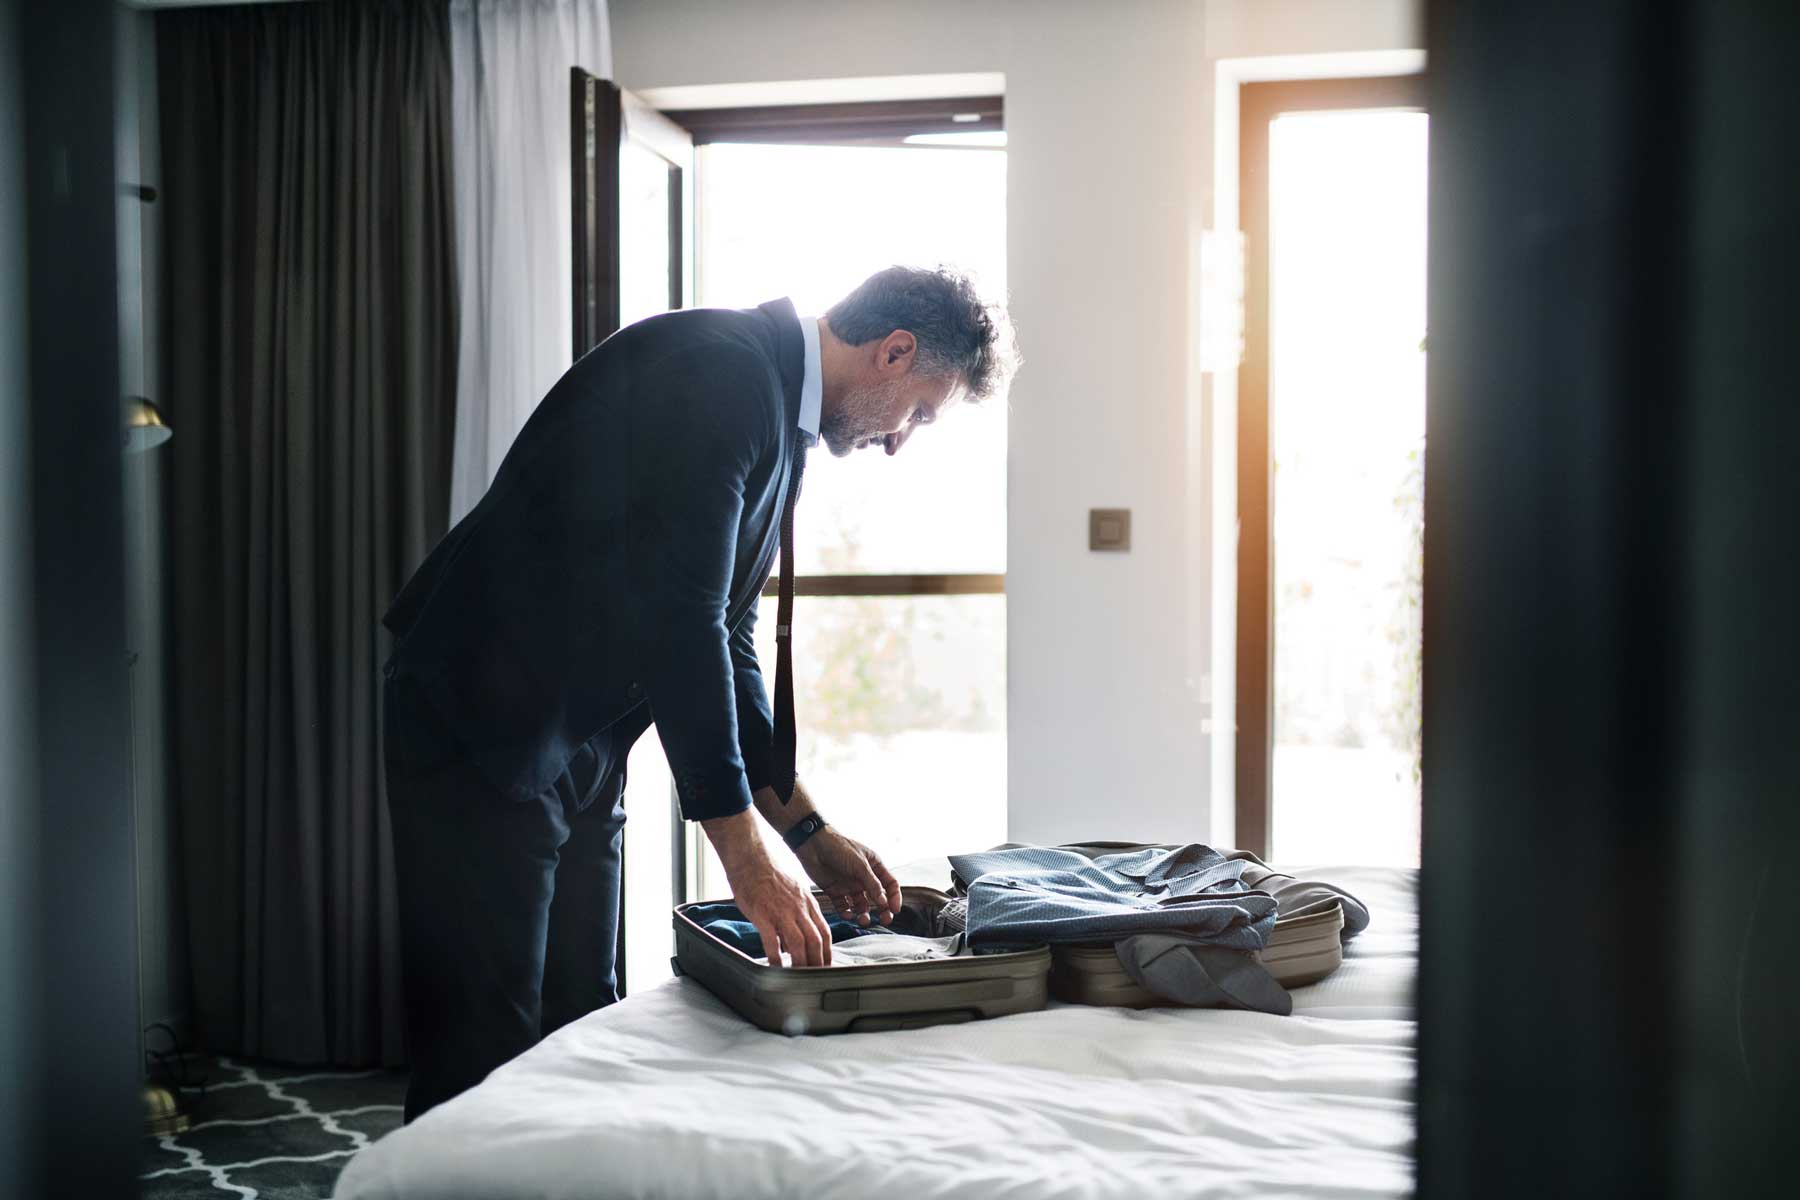 Mature businessman unpacking in a hotel room.